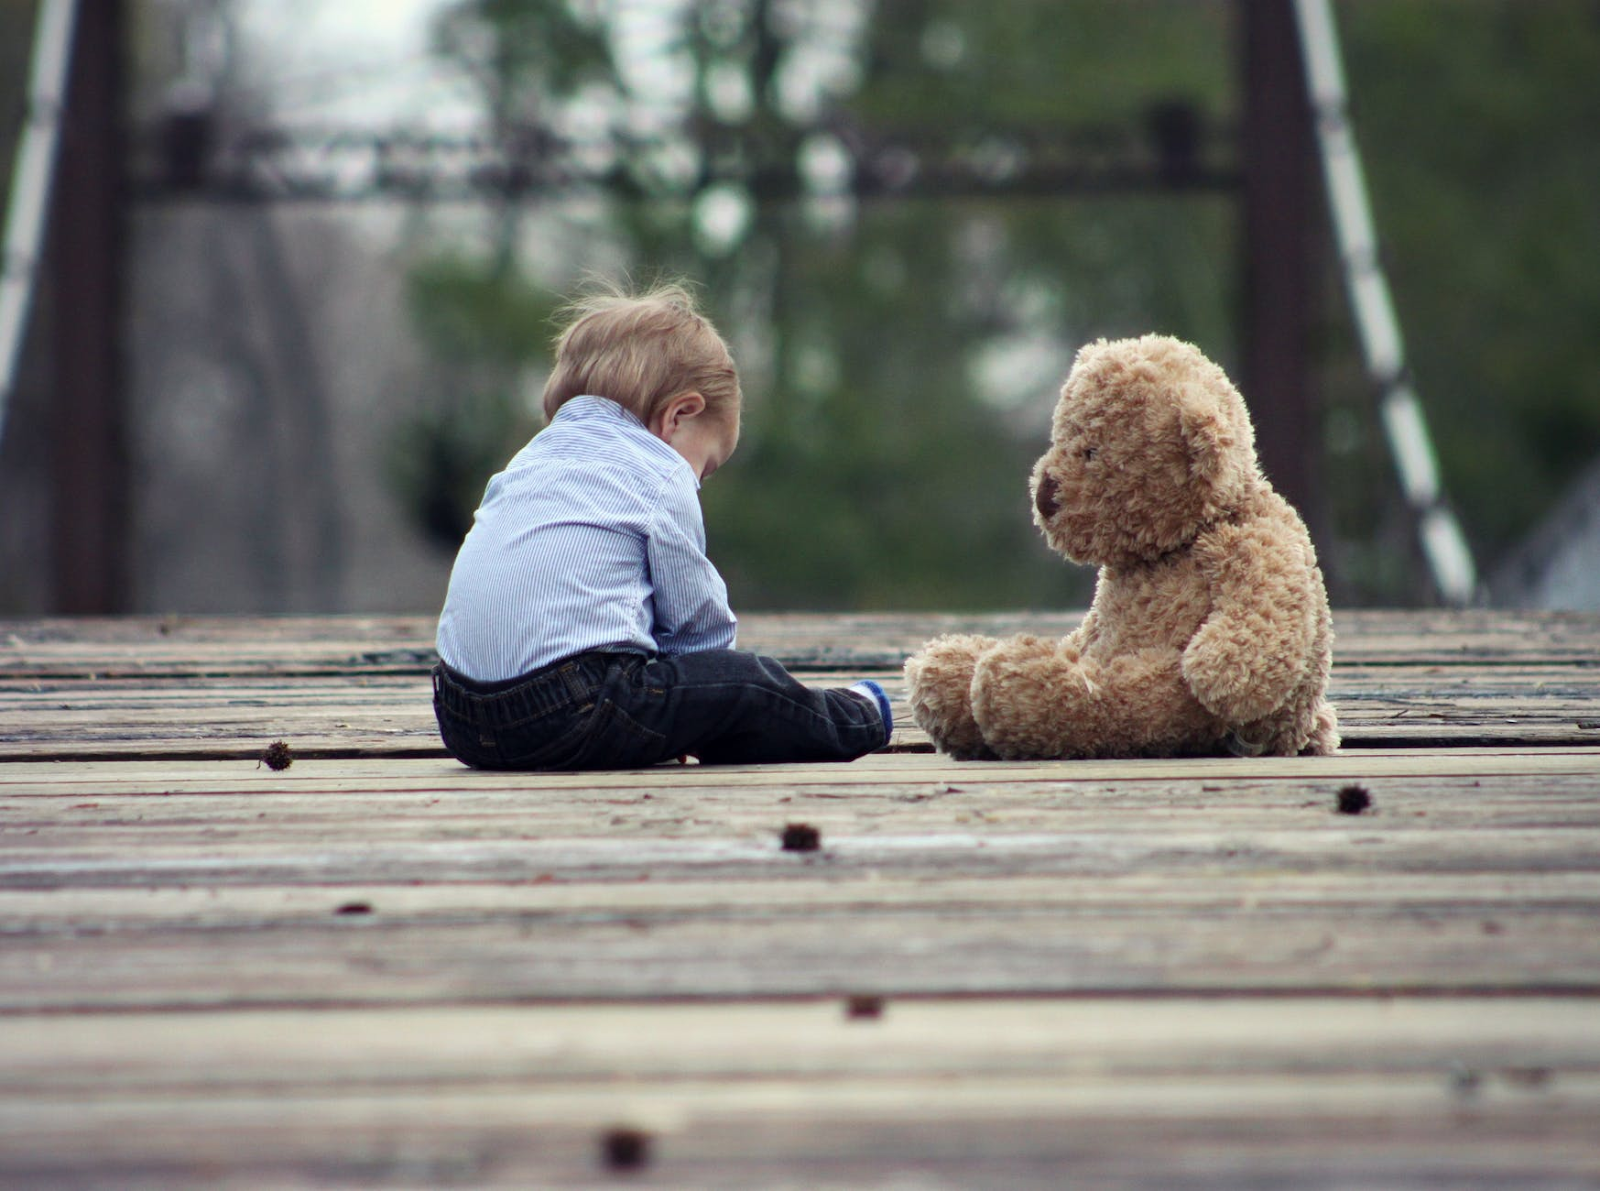 A child looking dejected with a teddy bear